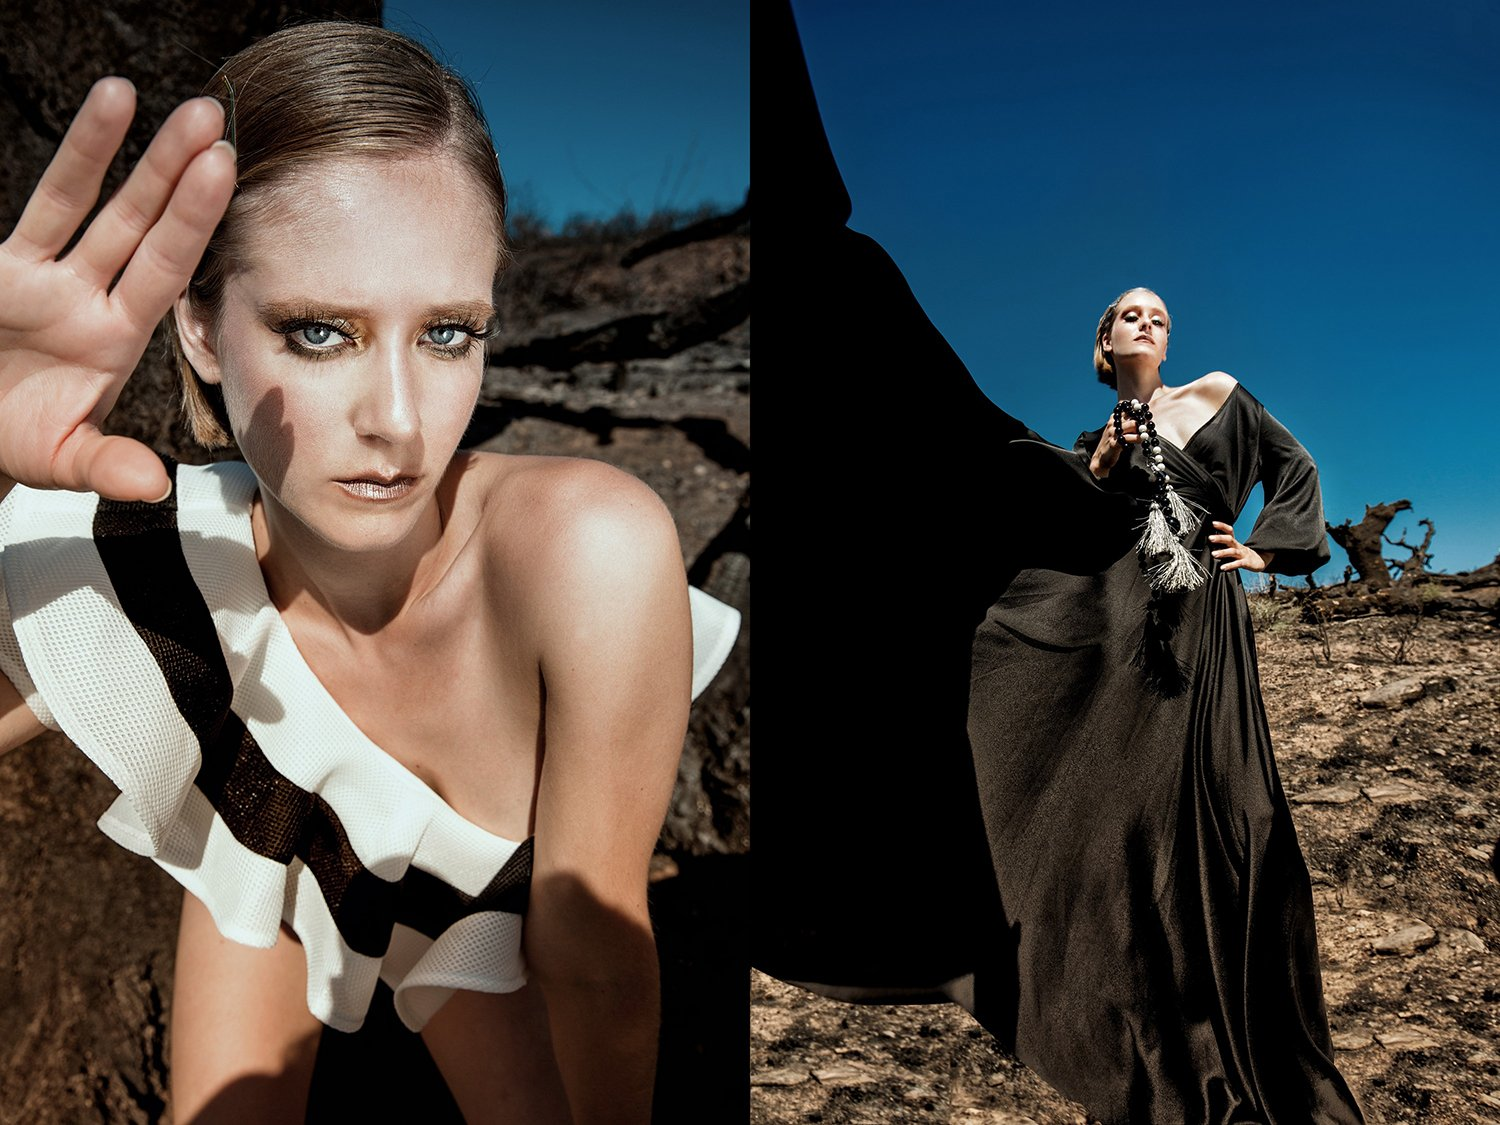 fashion photographer costa del sol spain